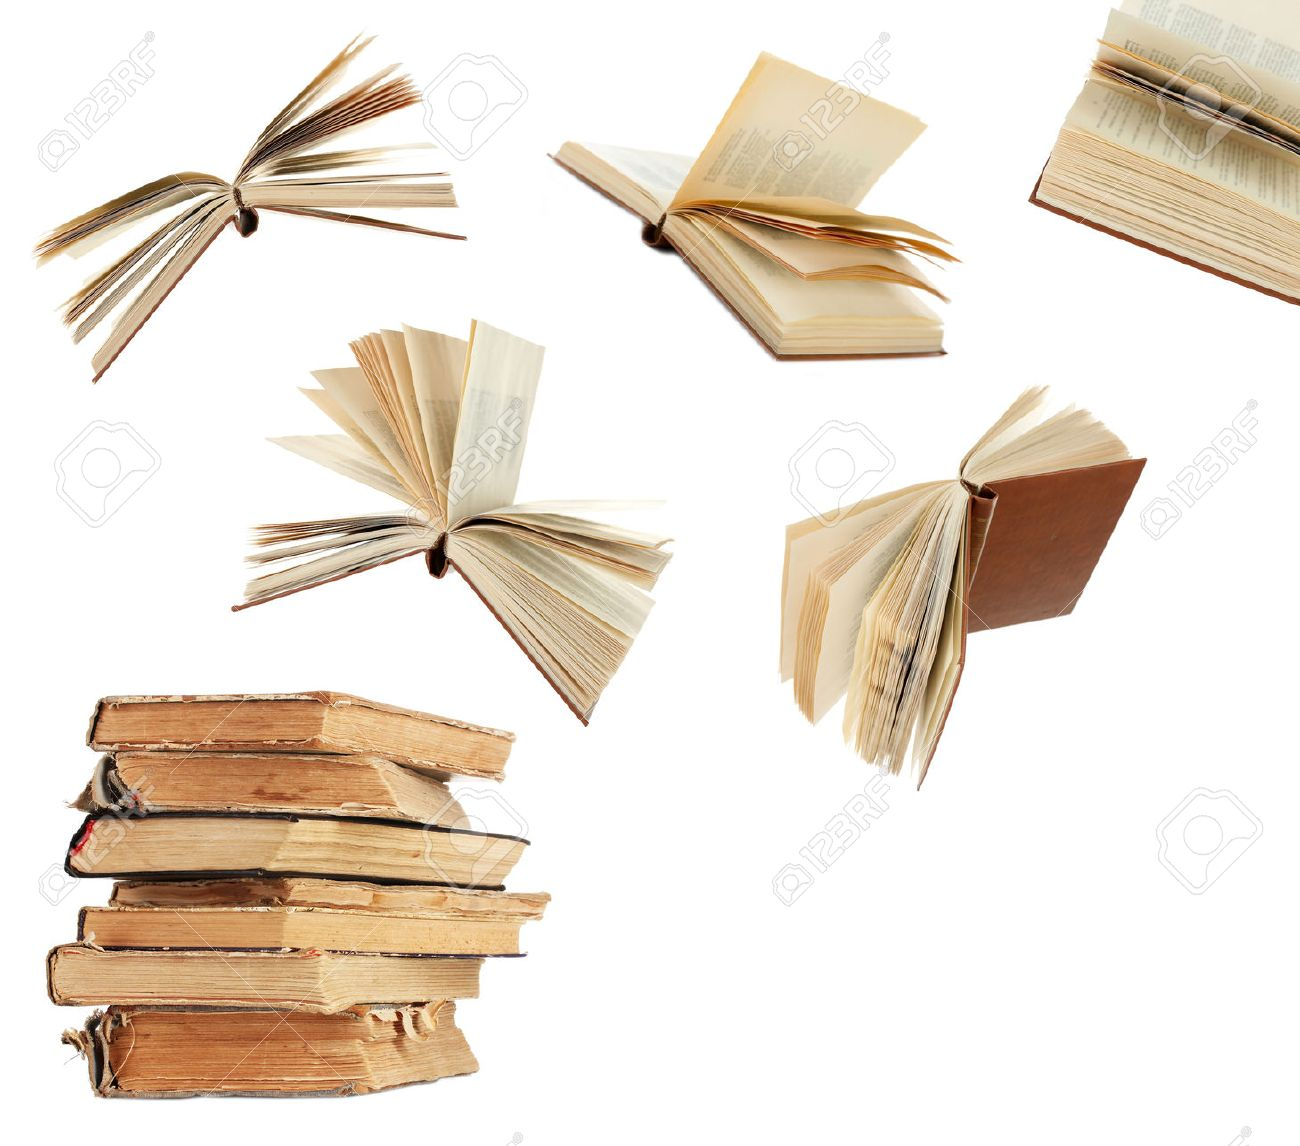 Flying Books Isolated On White Stock Photo, Picture And Royalty ...